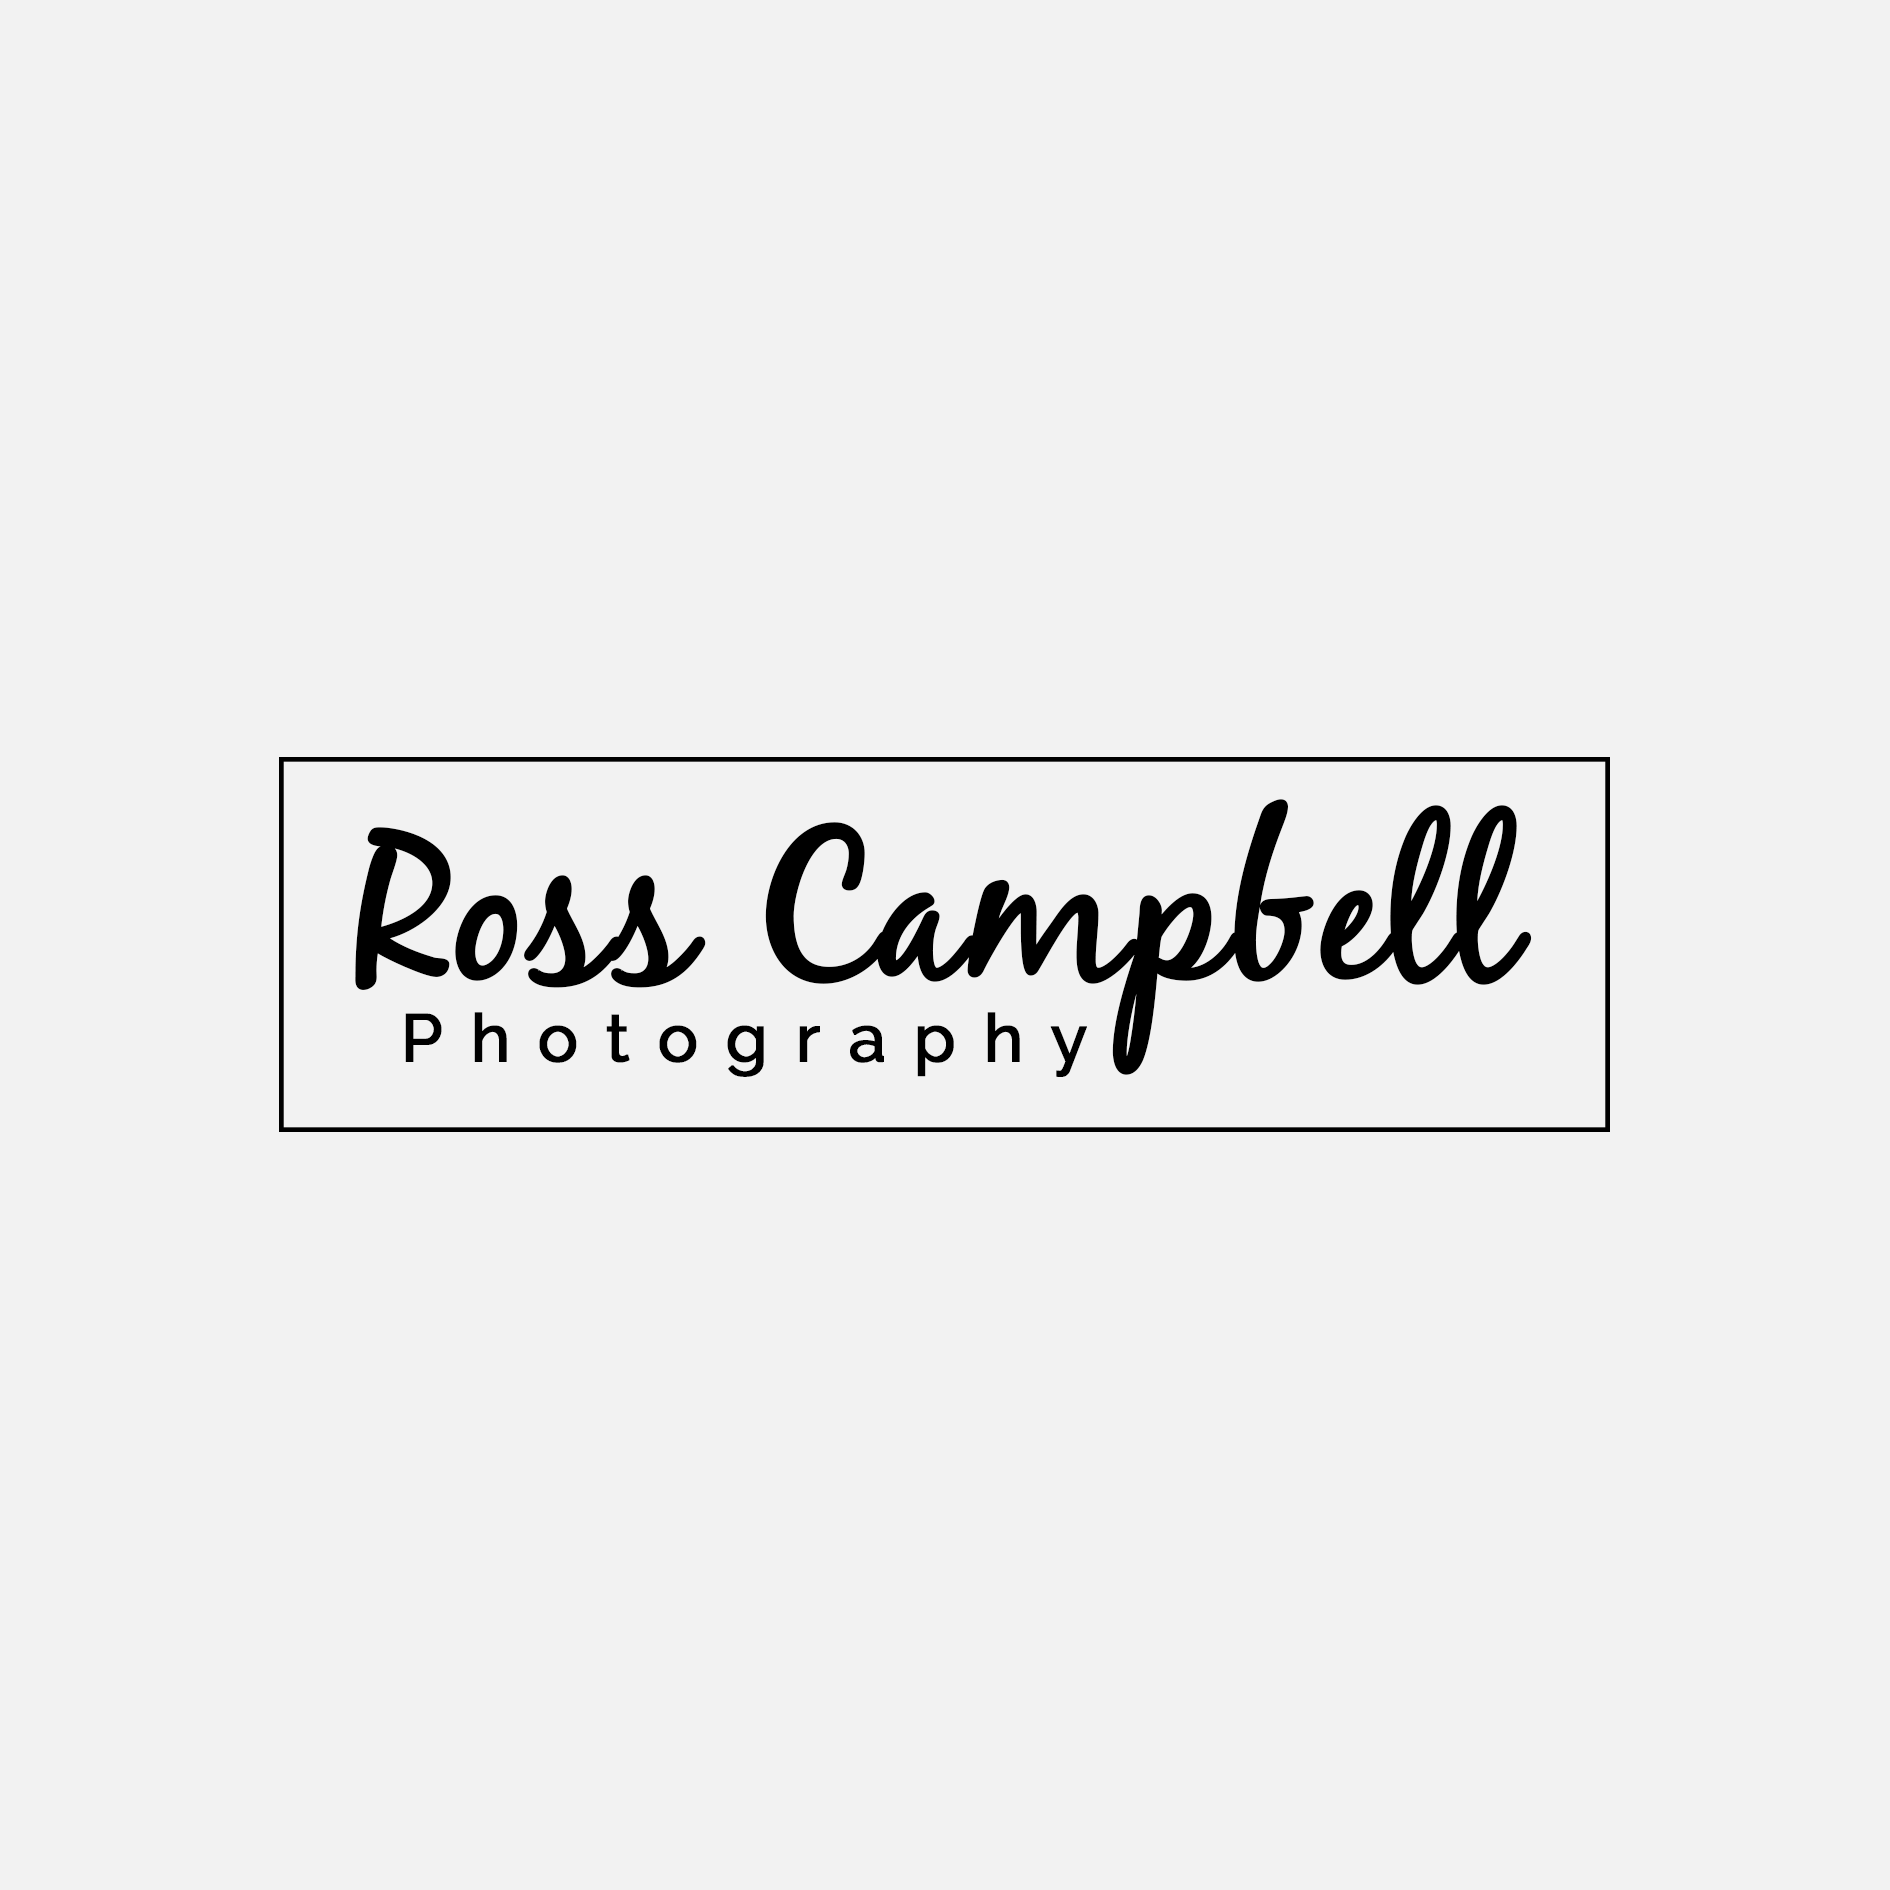 Ross Campbell Photography